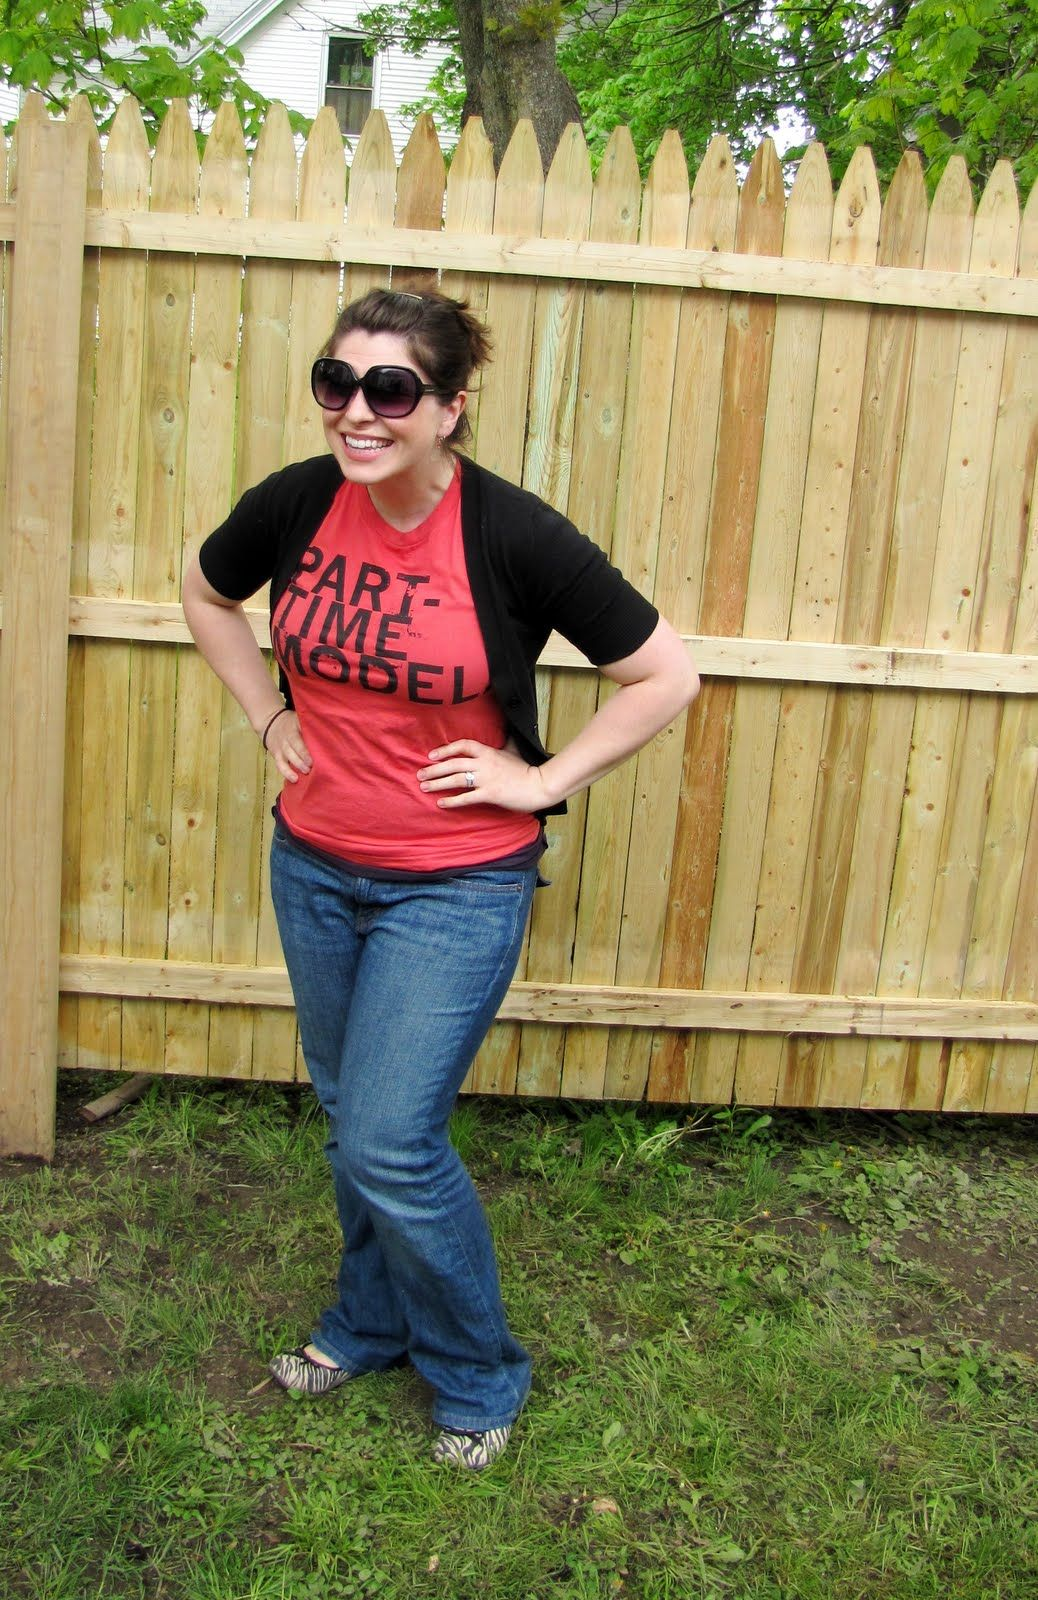 hillary of babymoohoo in our retired Part-time model tee